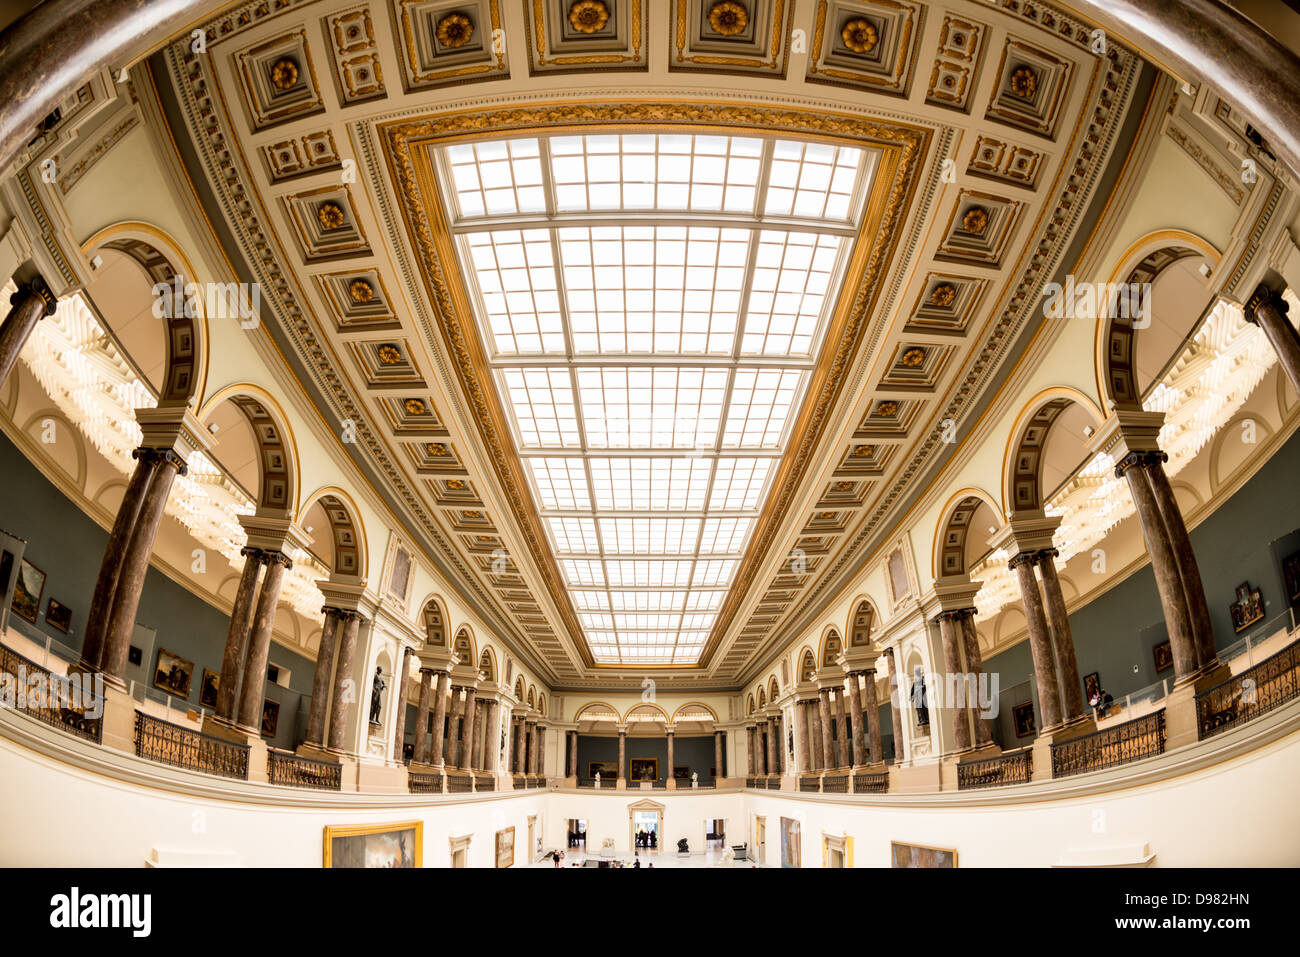 BRUSSELS, Belgium - Ceiling of the main hall at the Royal Museums of Fine Arts in Belgium (in French, Musées - Stock Image